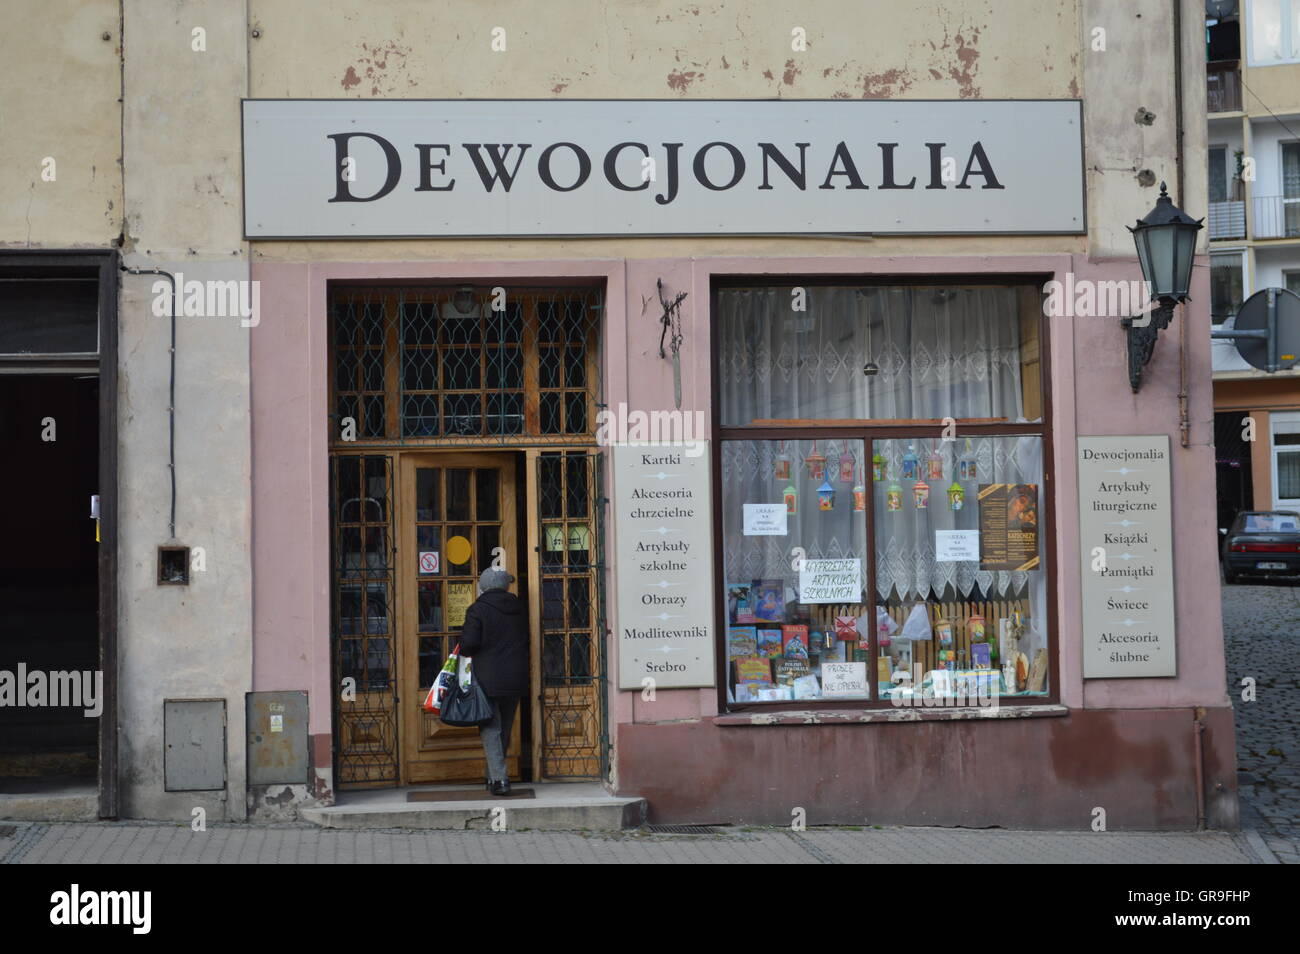 Polish Shop For Devotional Objects - Stock Image